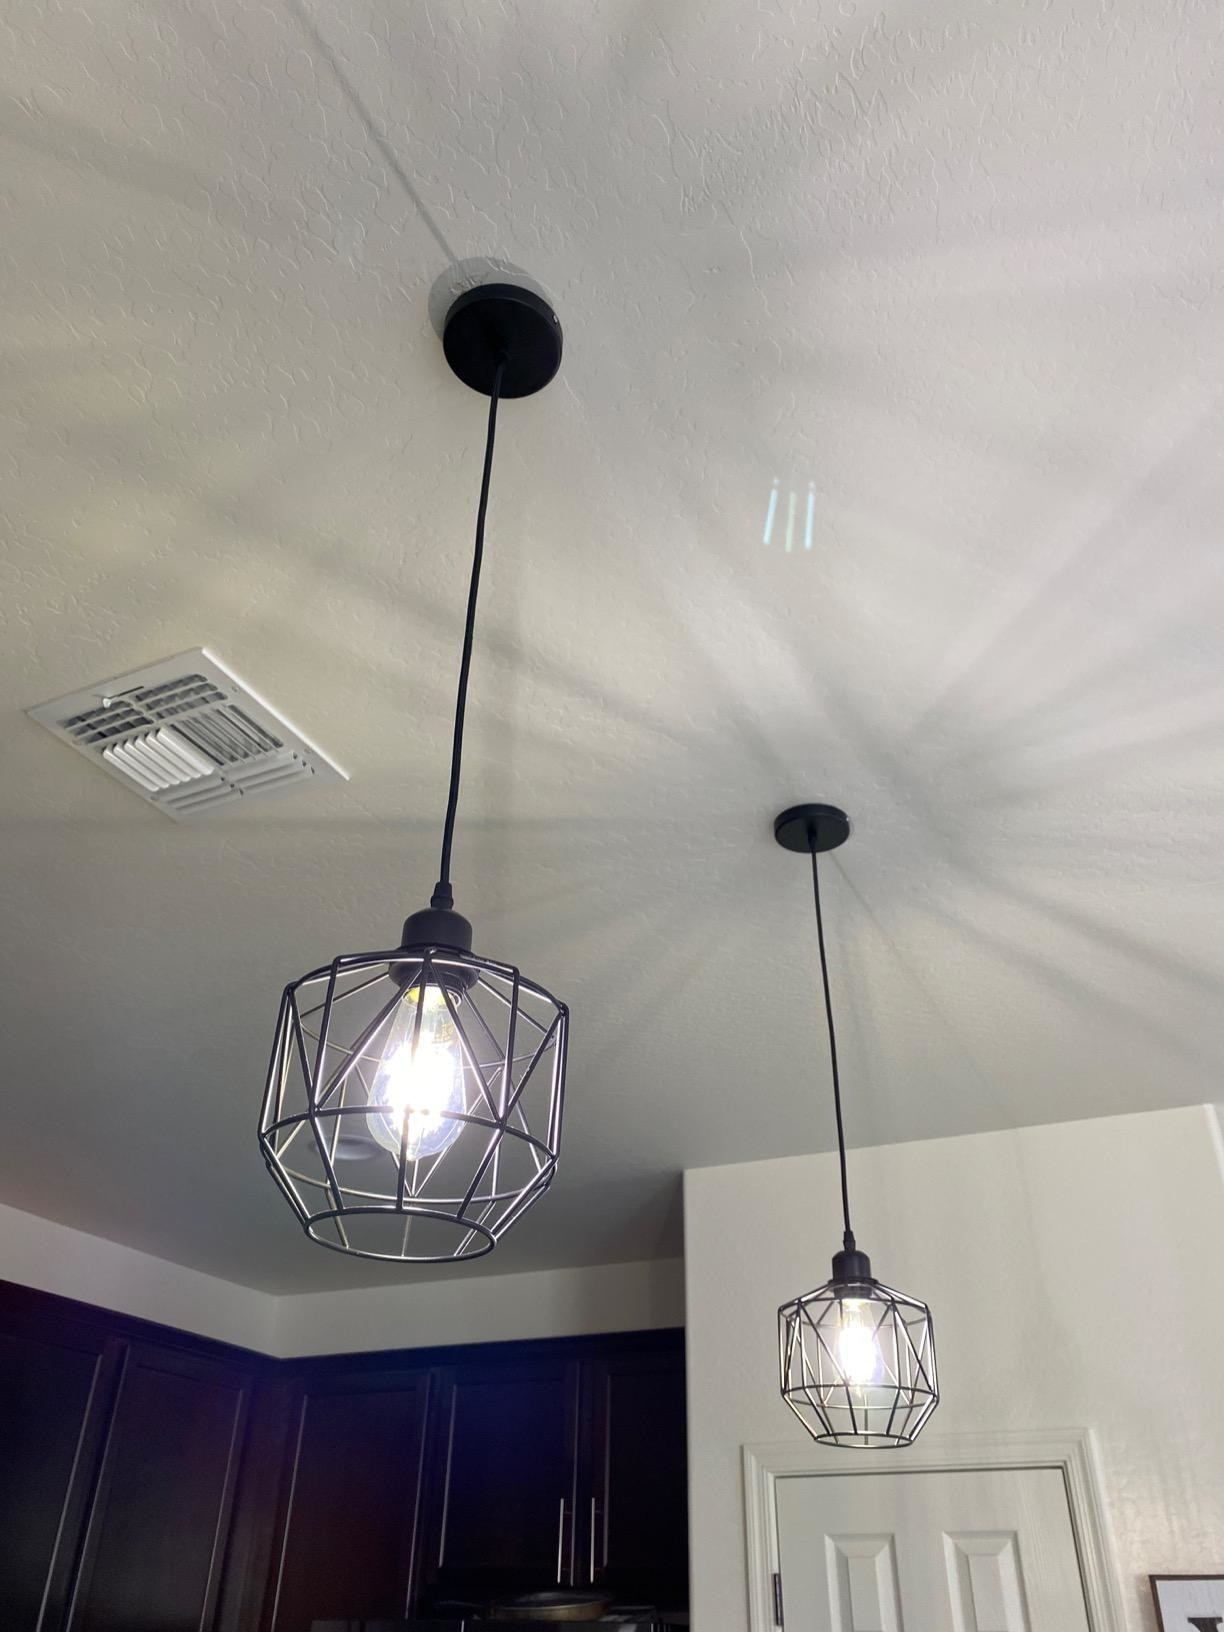 The hanging cage pendant lights